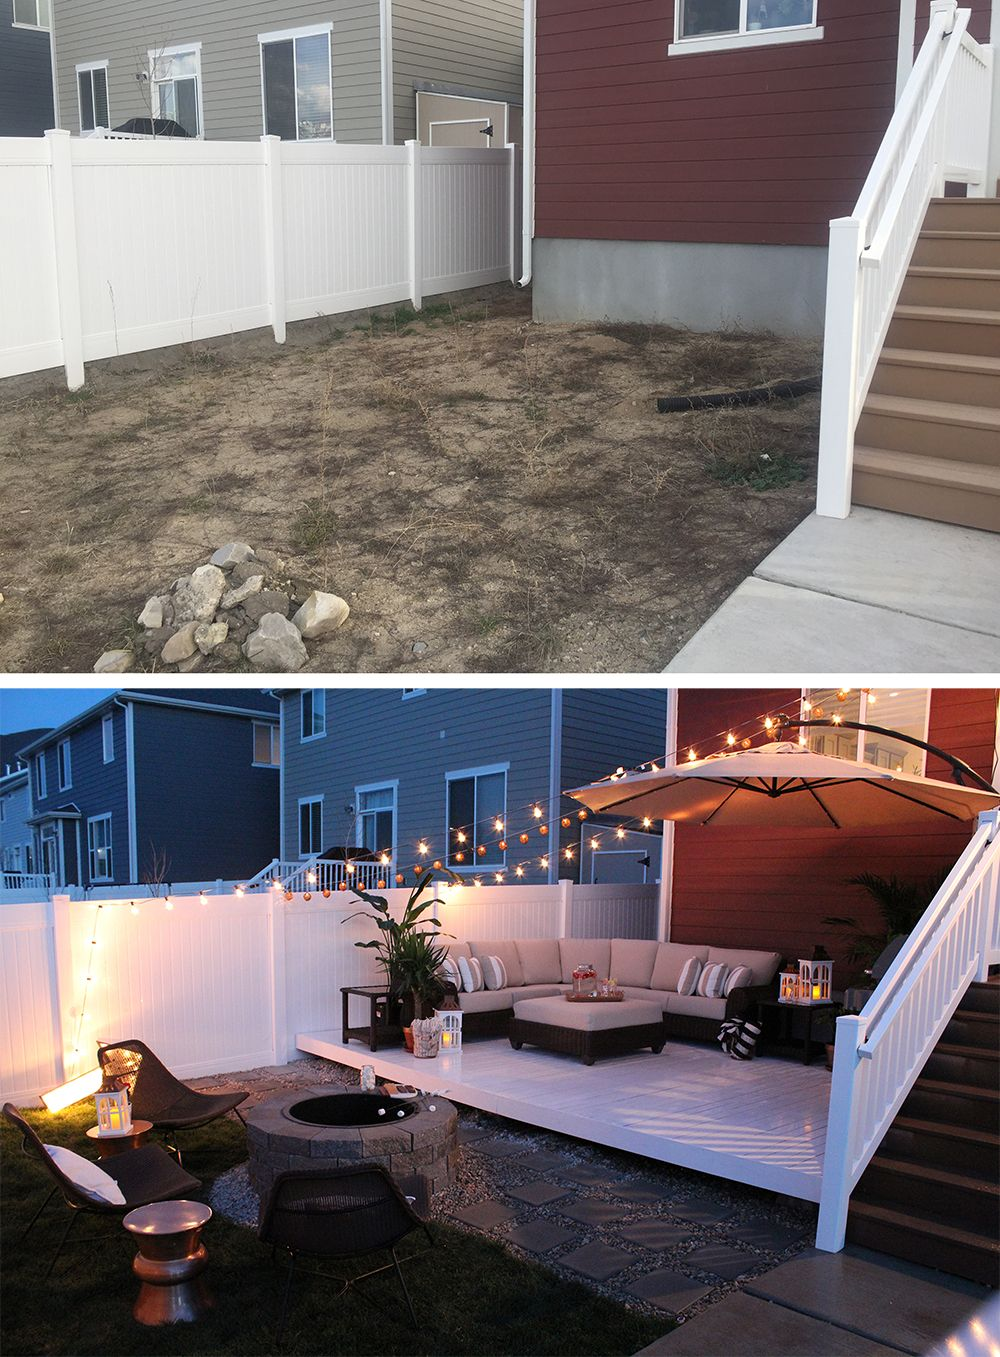 Backyard Transformation Before After Small Backyard Design